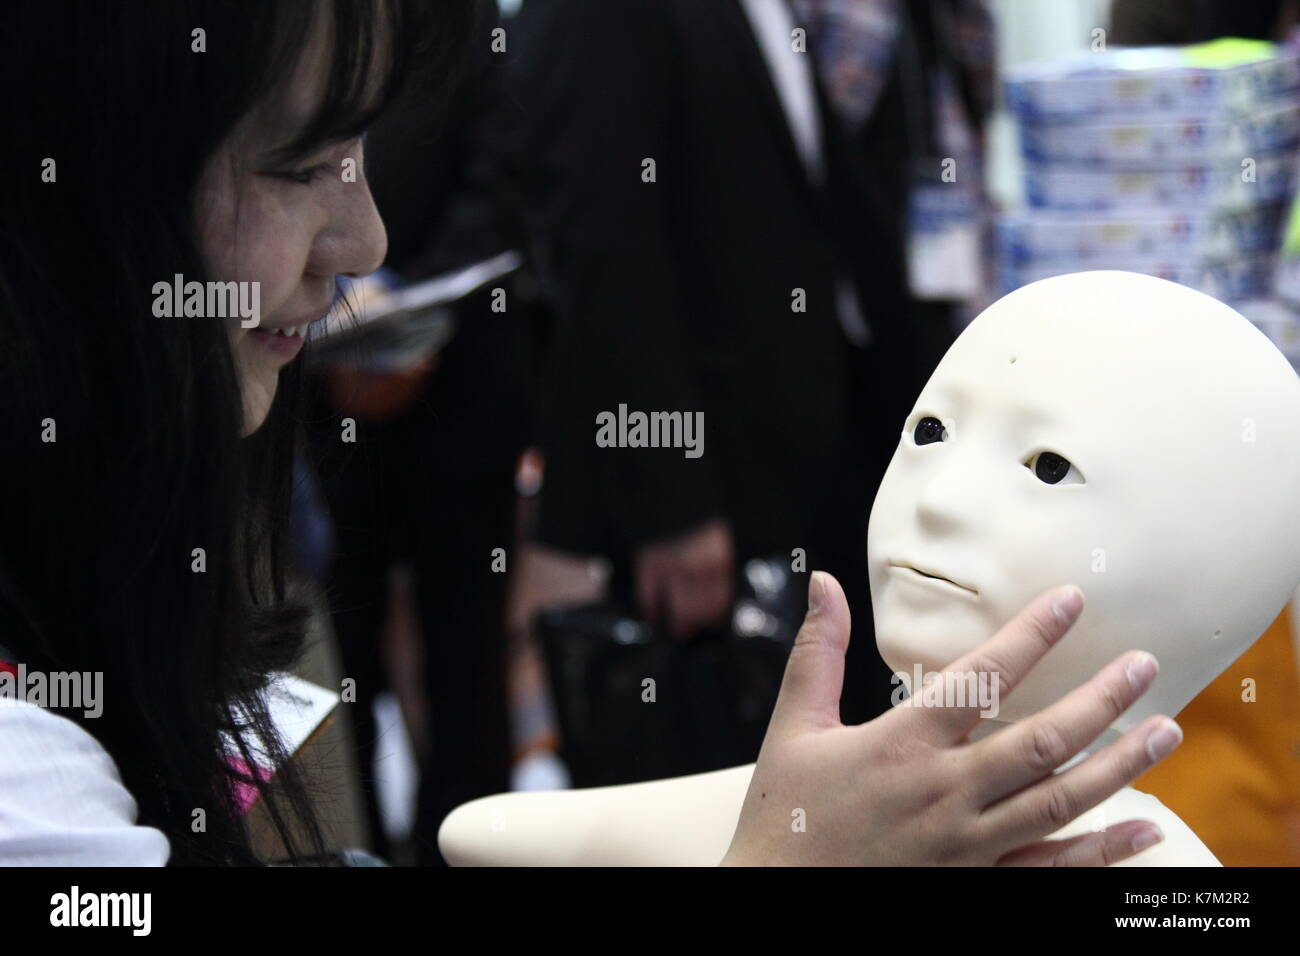 obsession in human - robot relationship - Stock Image